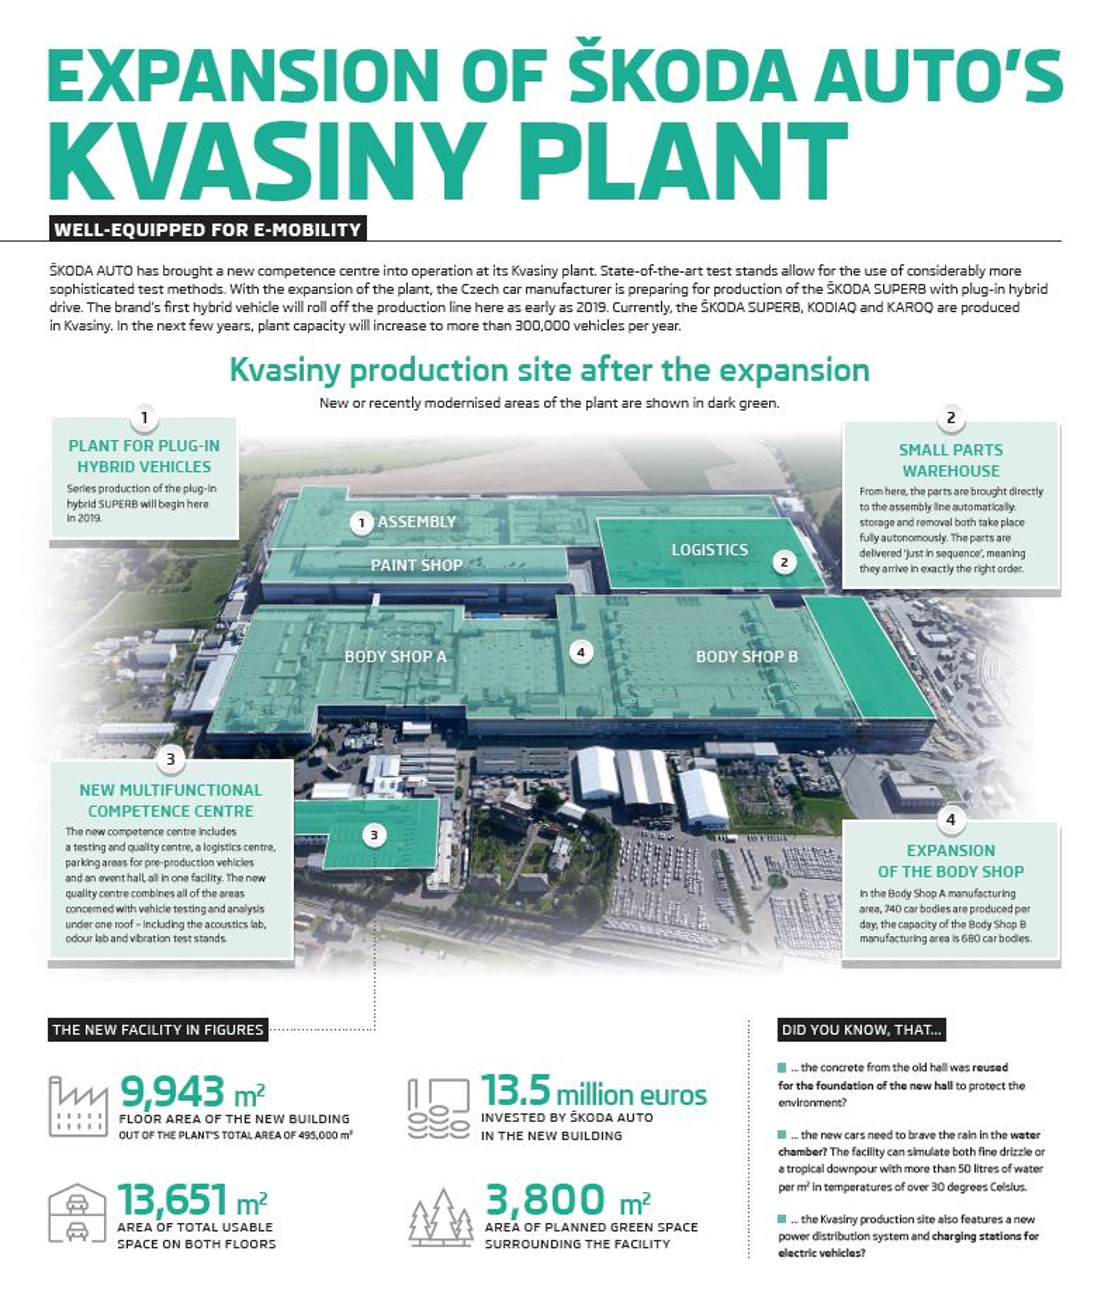 Infographic: Expansion of ŠKODA AUTO plant in Kvasiny